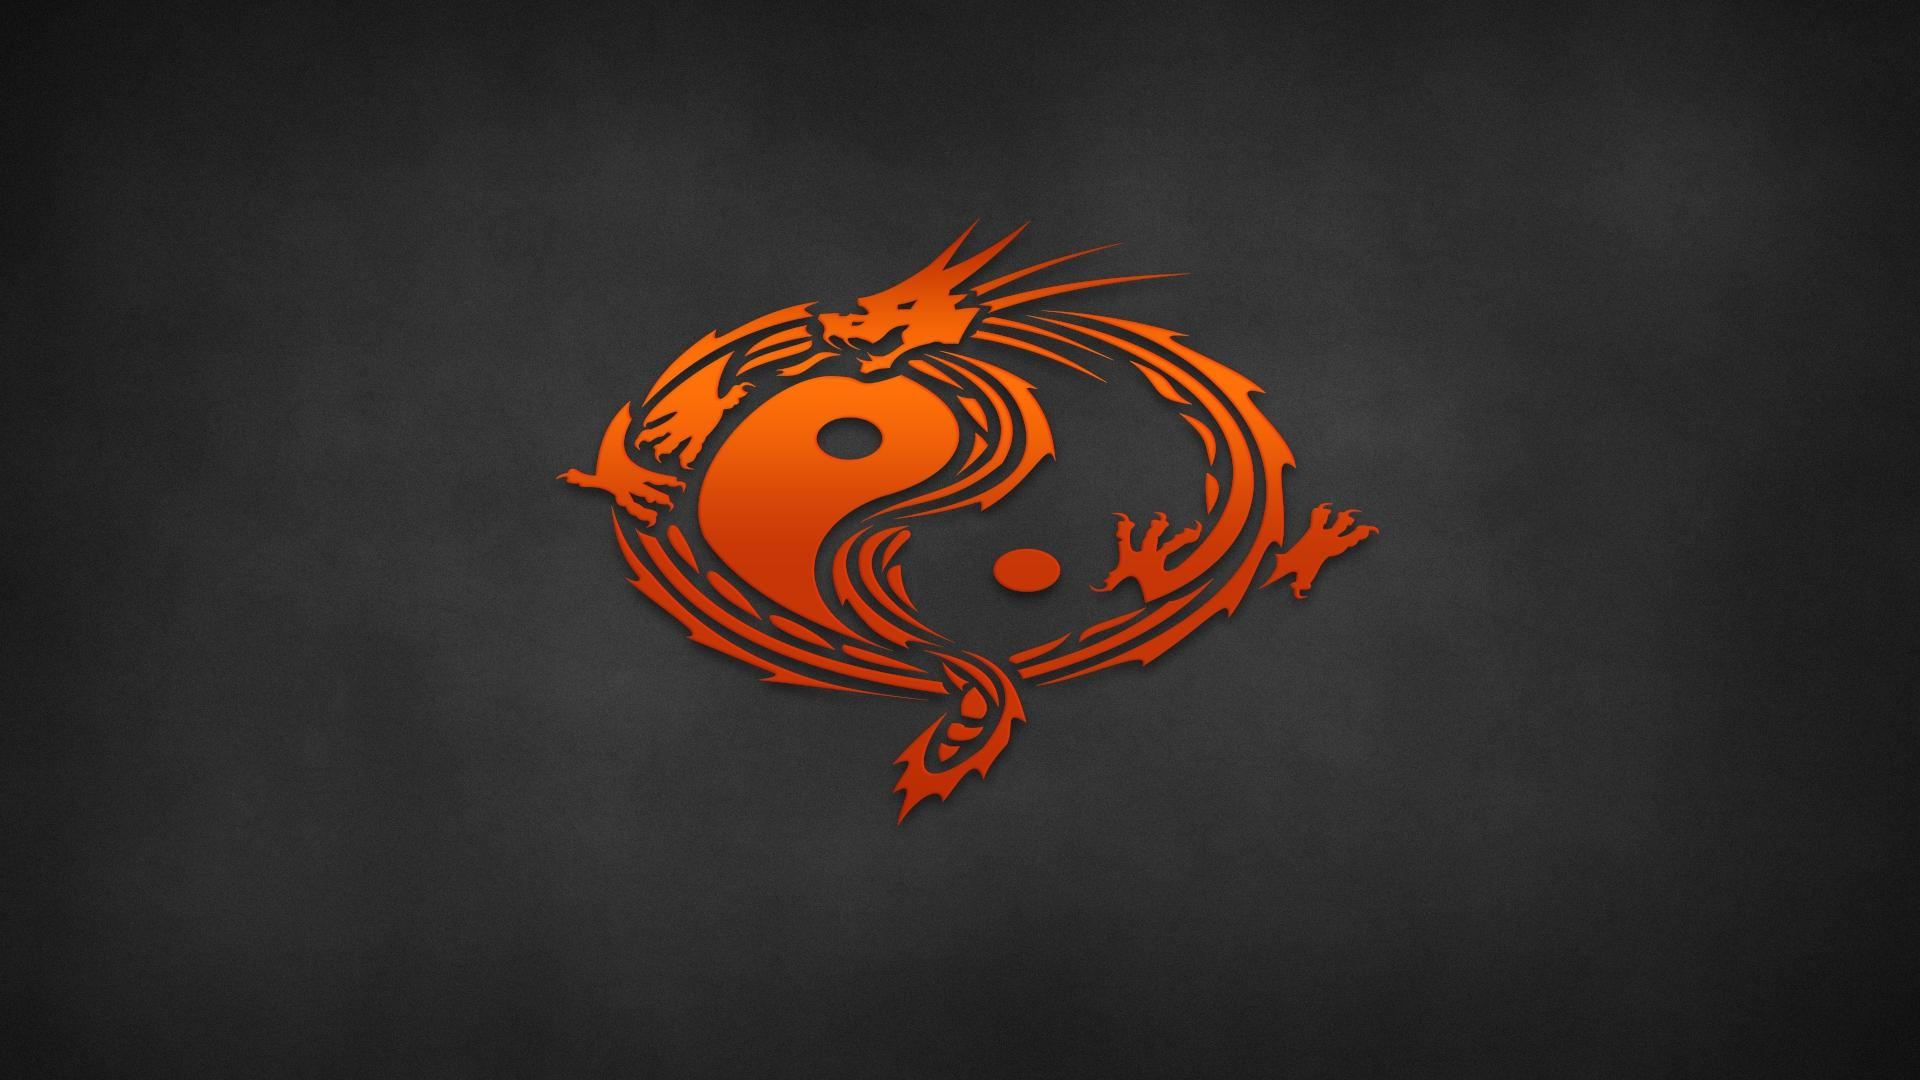 Dragon Yin Yang Wallpaper - WallpaperSafari